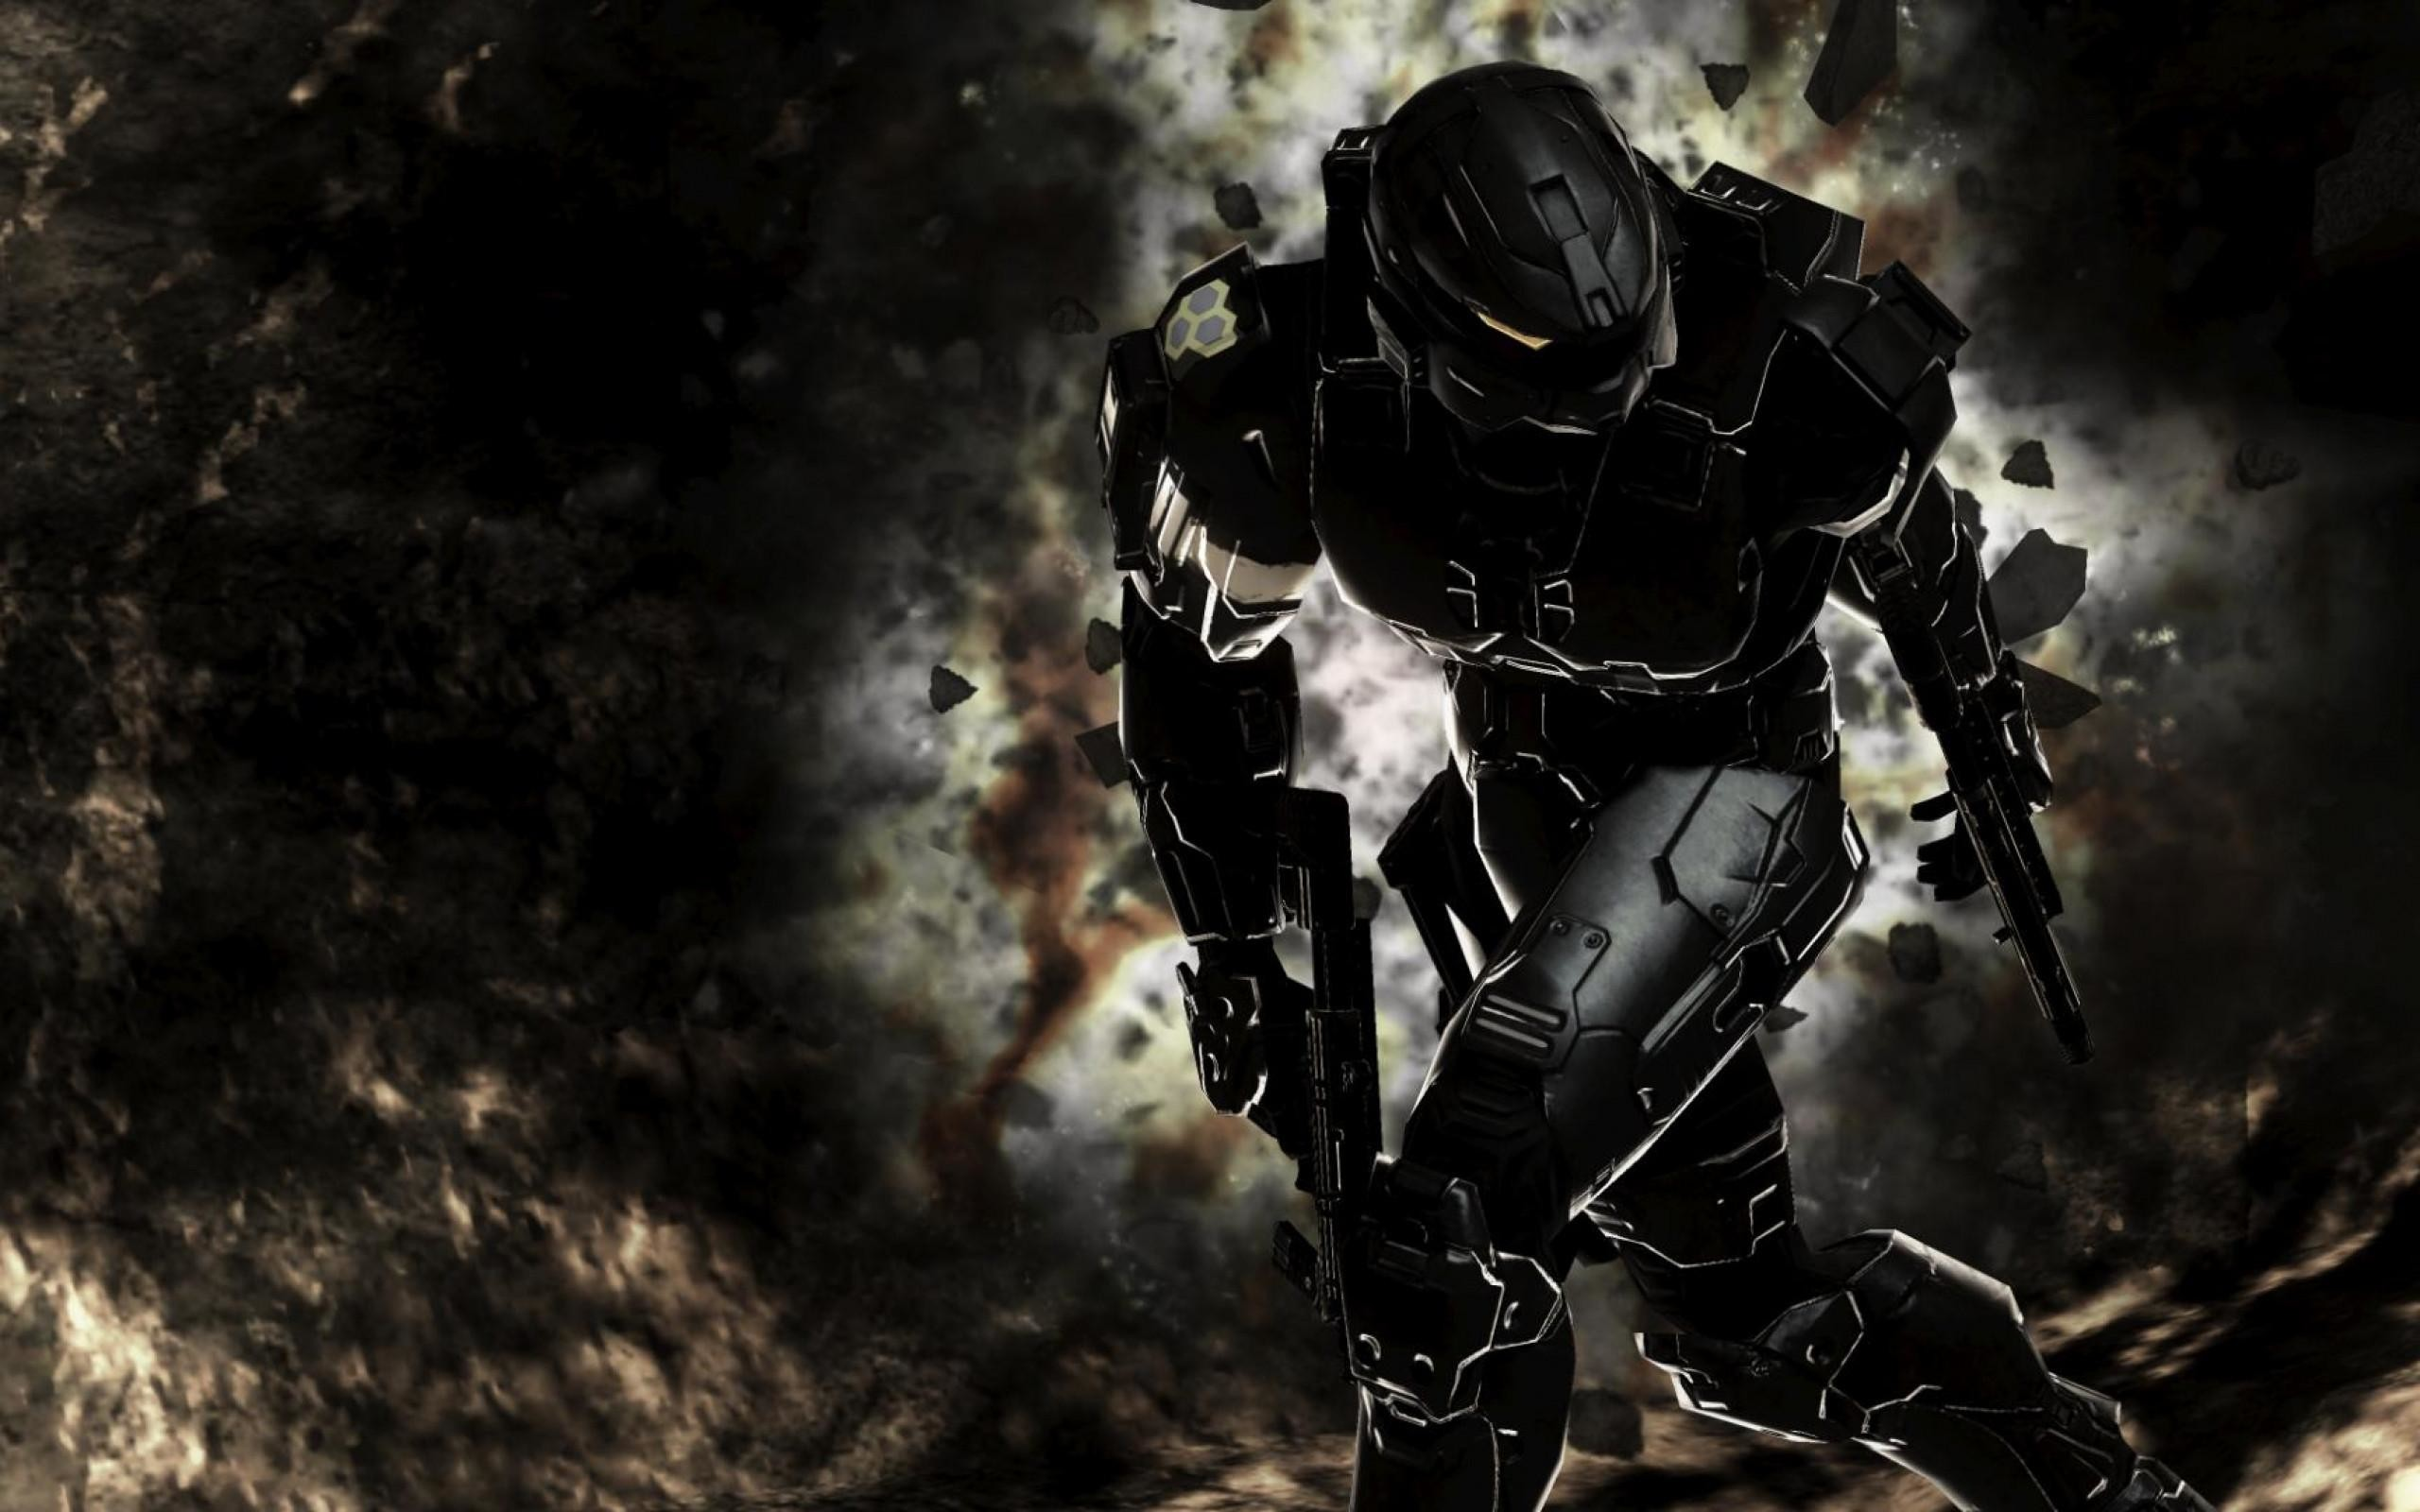 … games wallpapers 2016 hd wallpapers backgrounds of your choice …